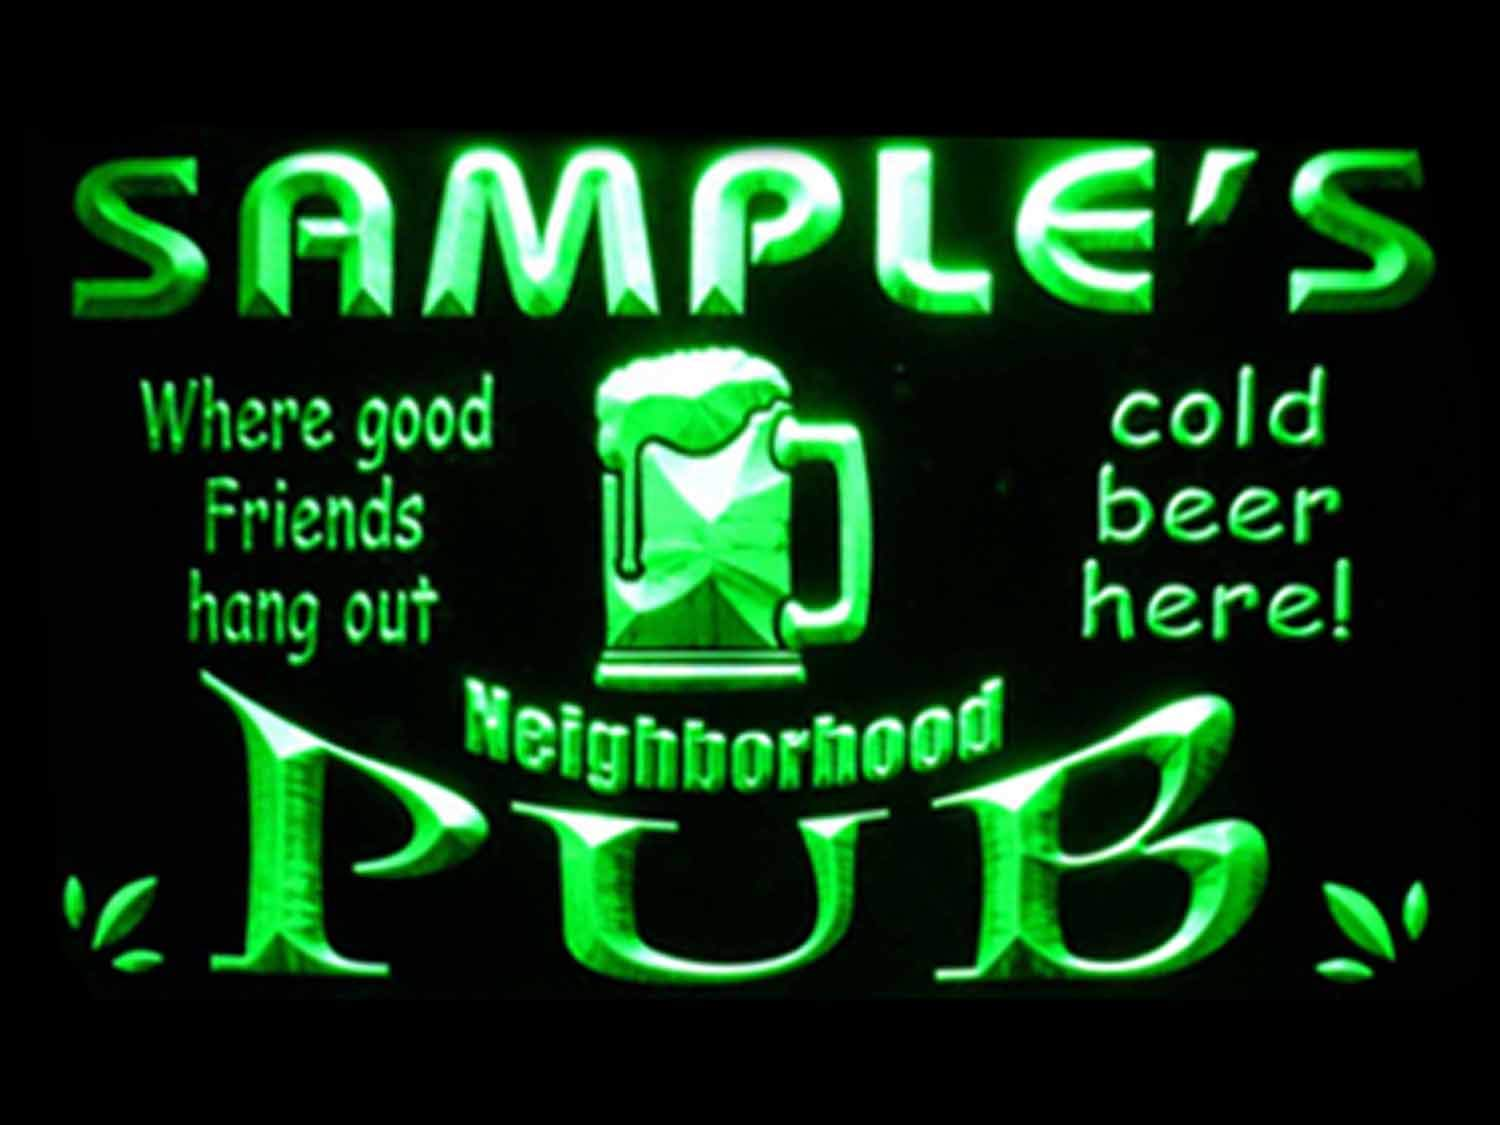 Name Personalized Custom Neighborhood Pub Bar Beer Neon Sign Green 16x12 inches st4s43-pg-tm-g by ADVPRO